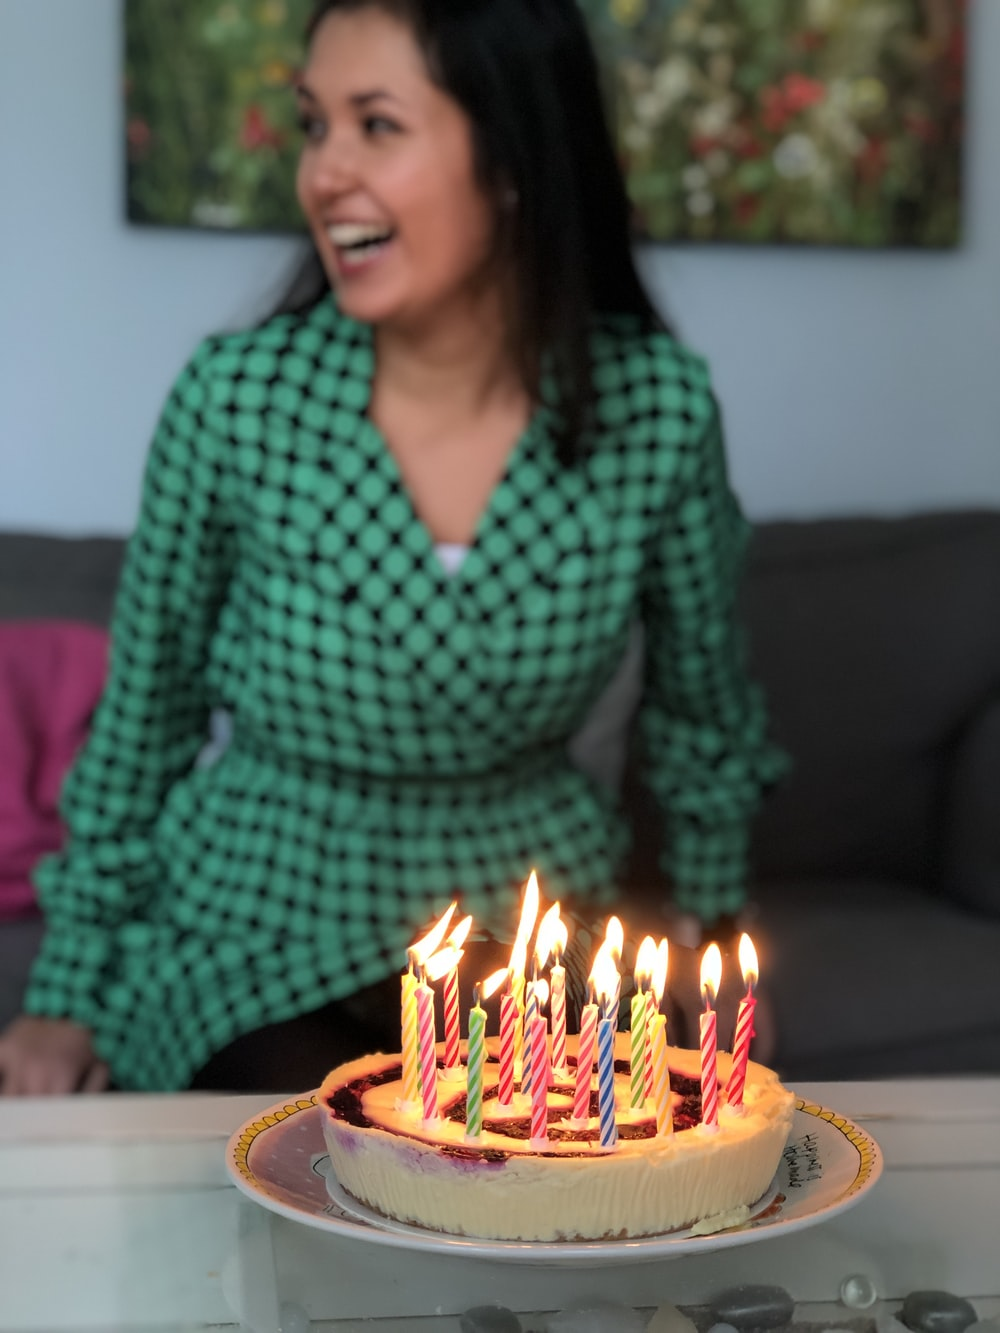 smiling woman in front of cake